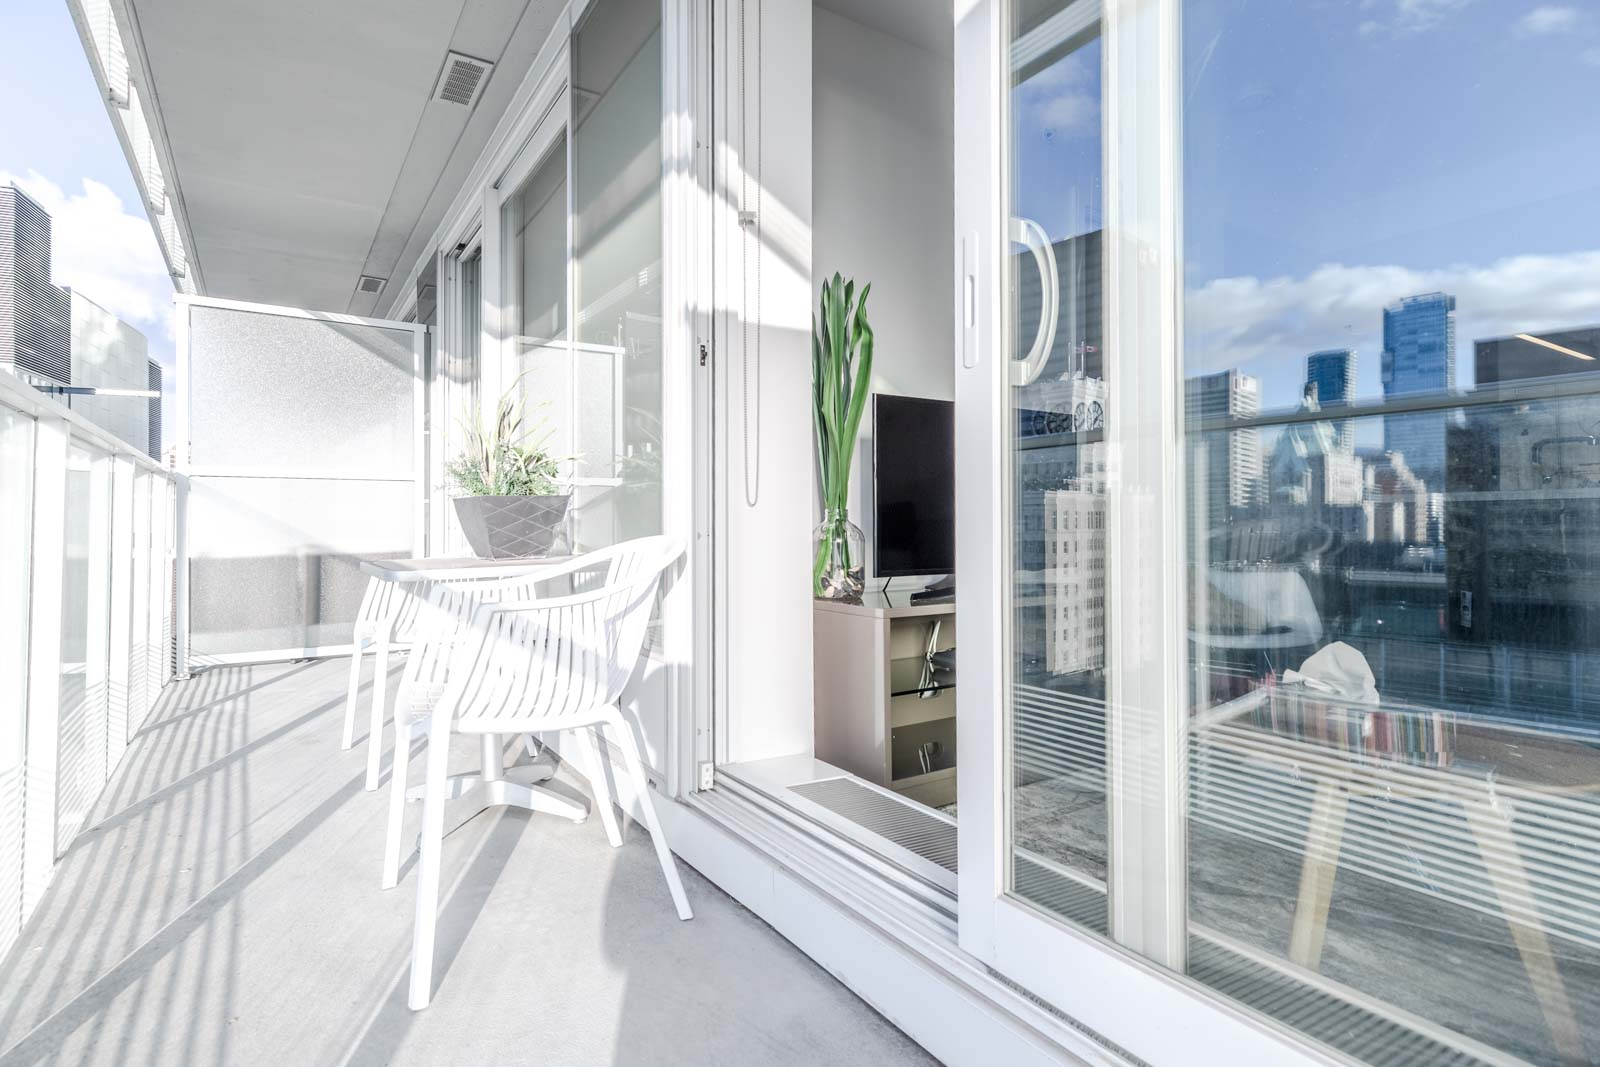 Private balcony with view at Downtown Vancouver rental condo.